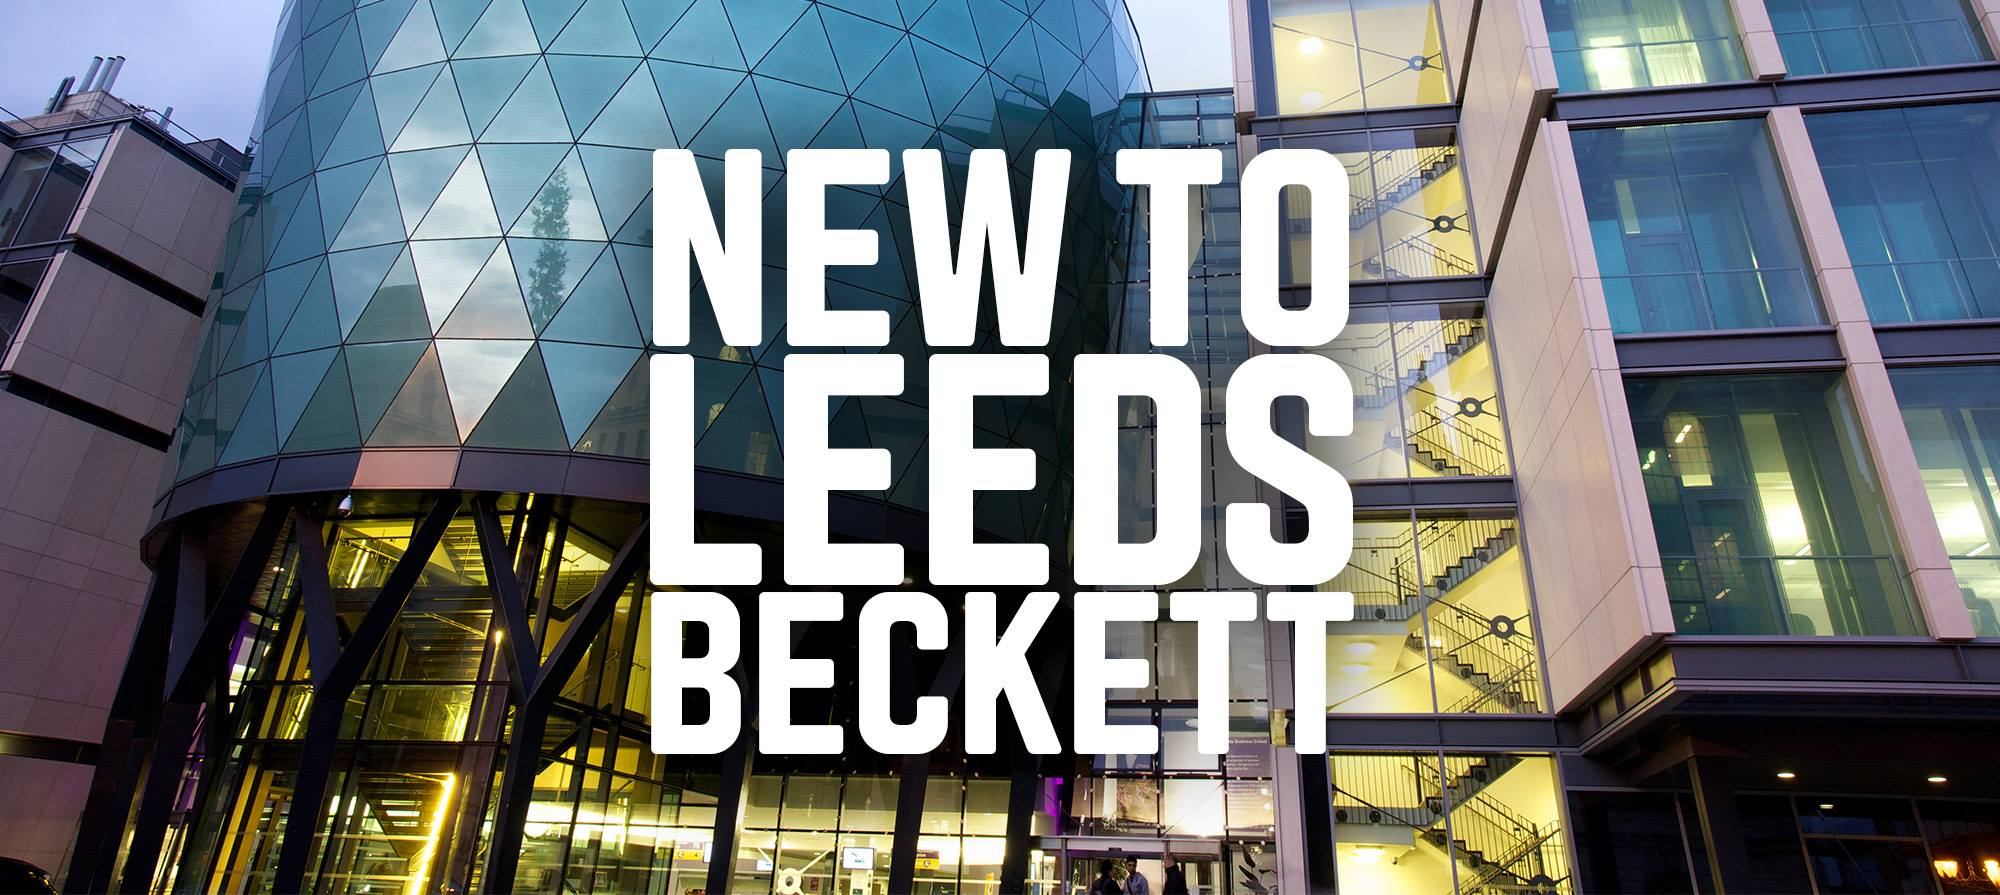 New To Leeds Beckett This January